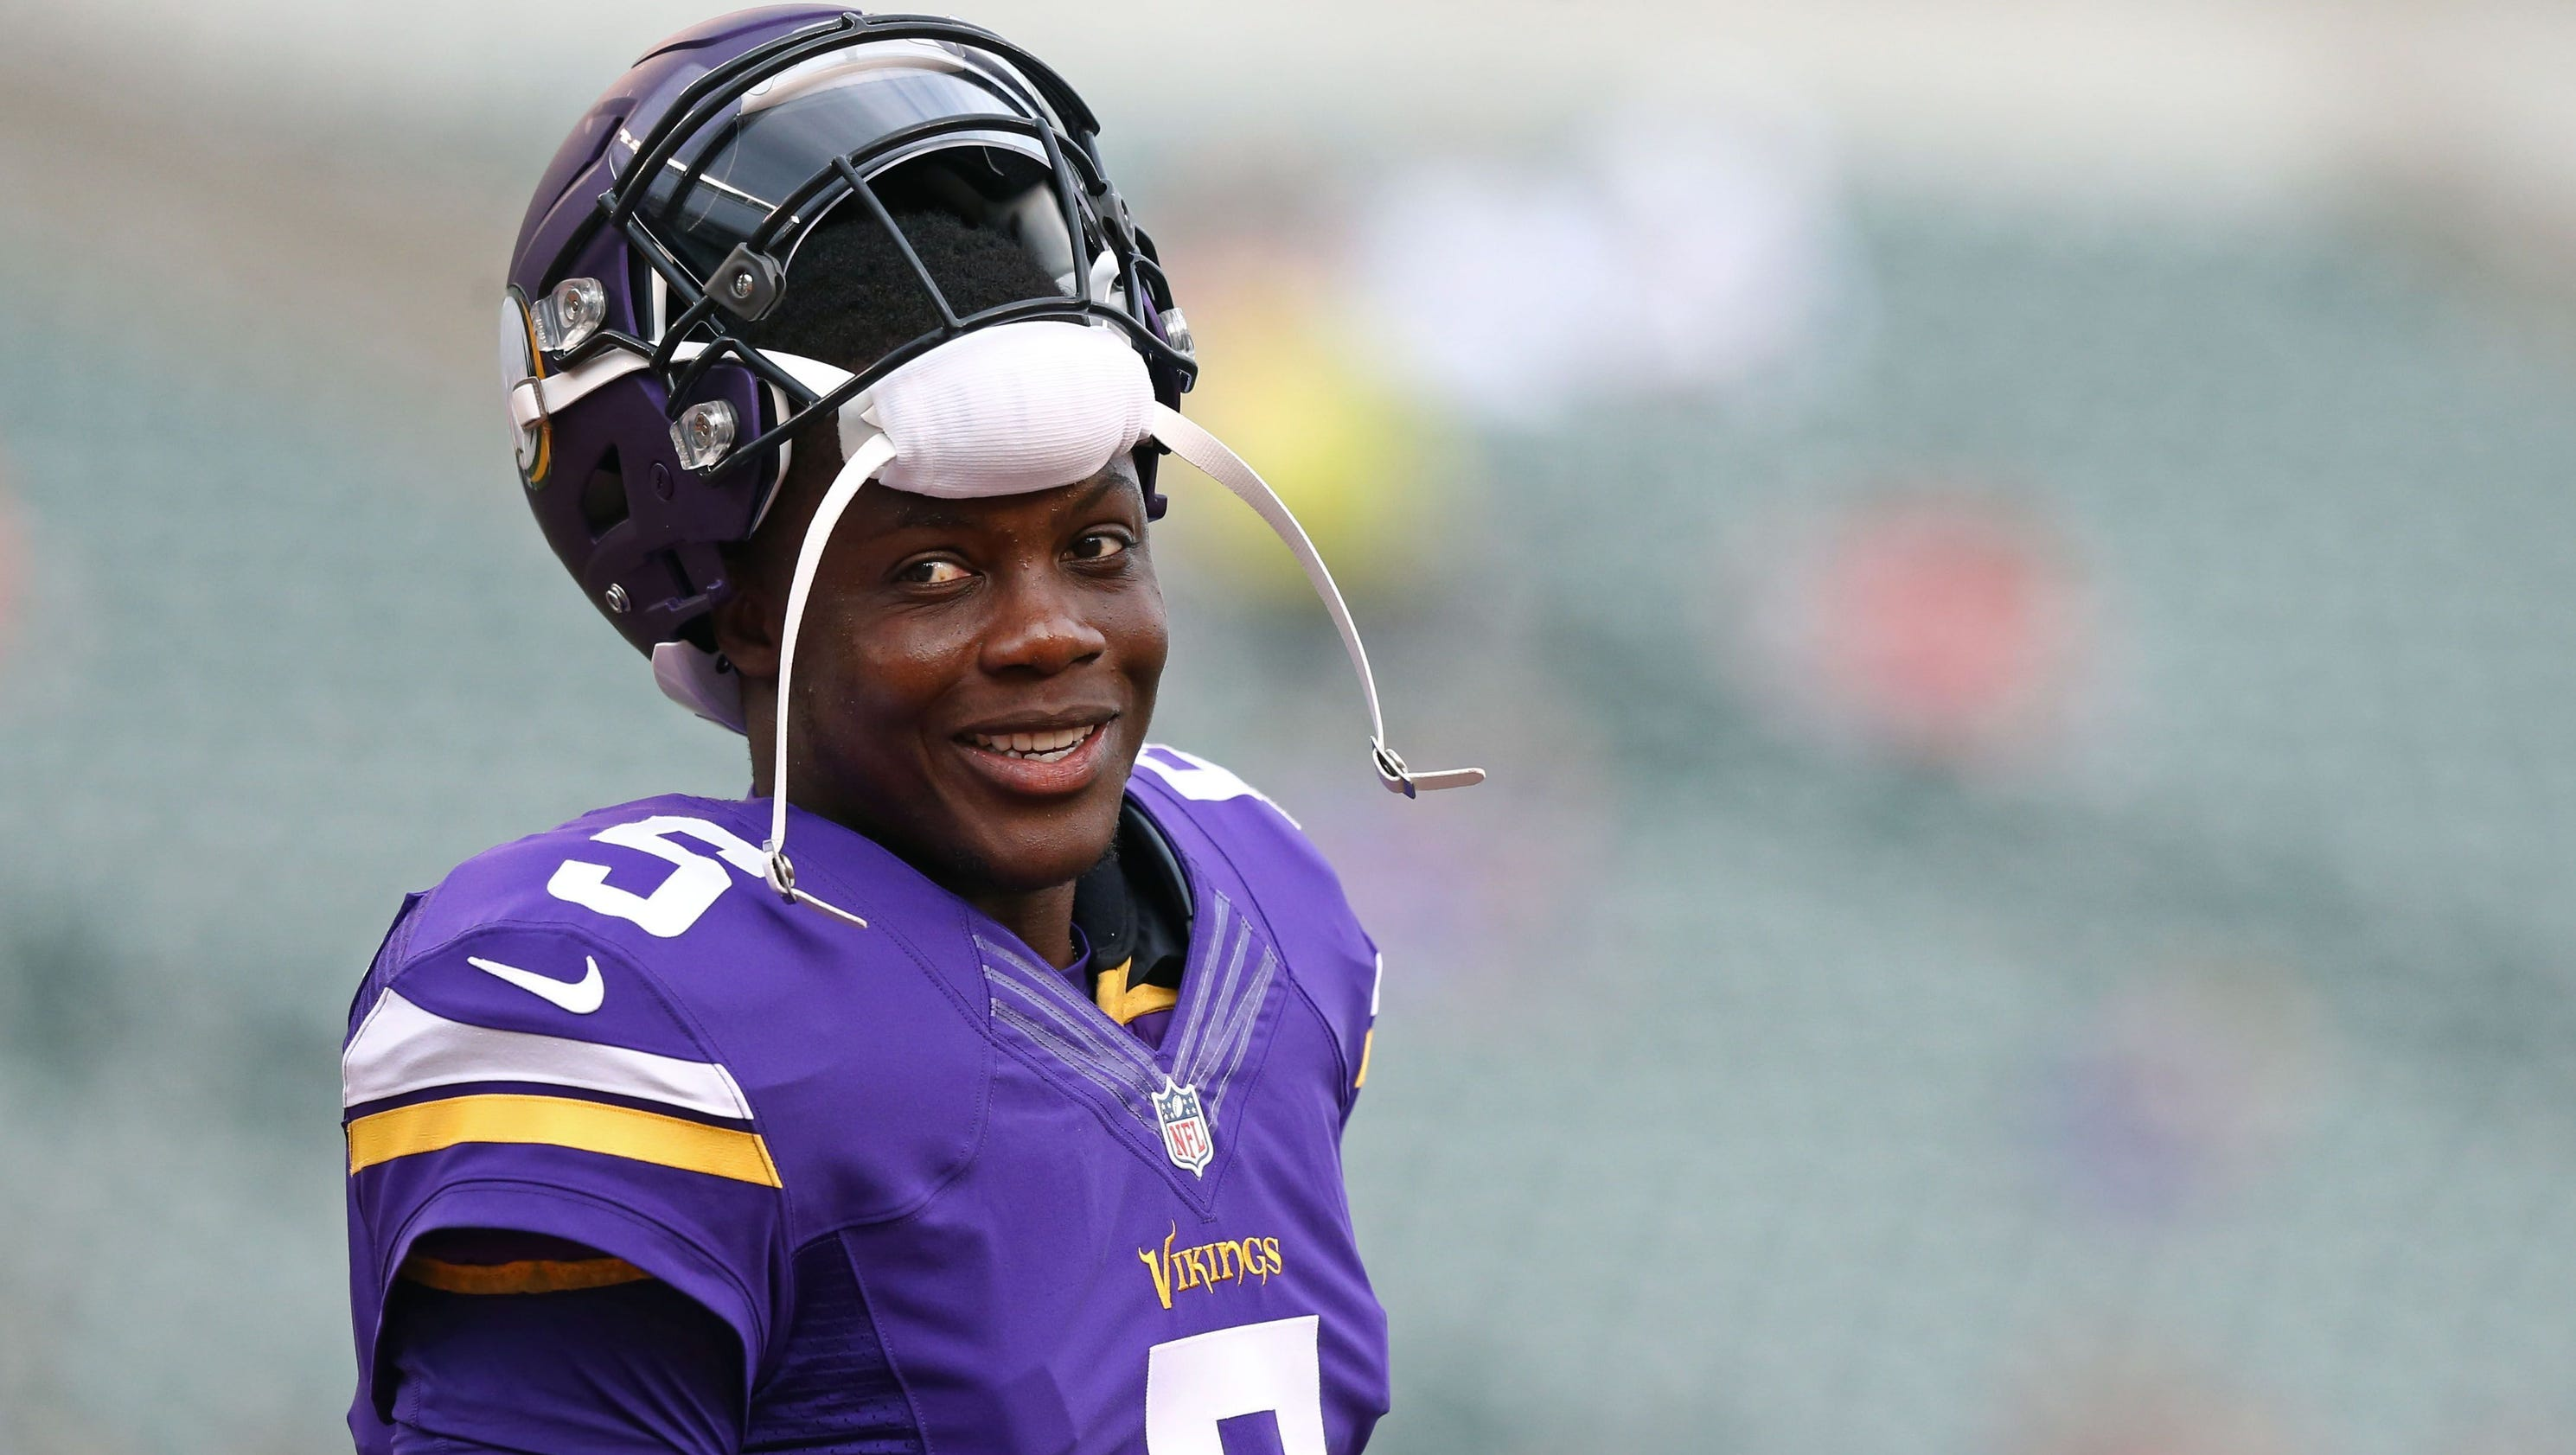 Teddy bridgewater injury update vikings expect qb to miss 2017 too report says sporting news - Vikings Teddy Bridgewater Not Cleared For Practice Knee Rehab Continues